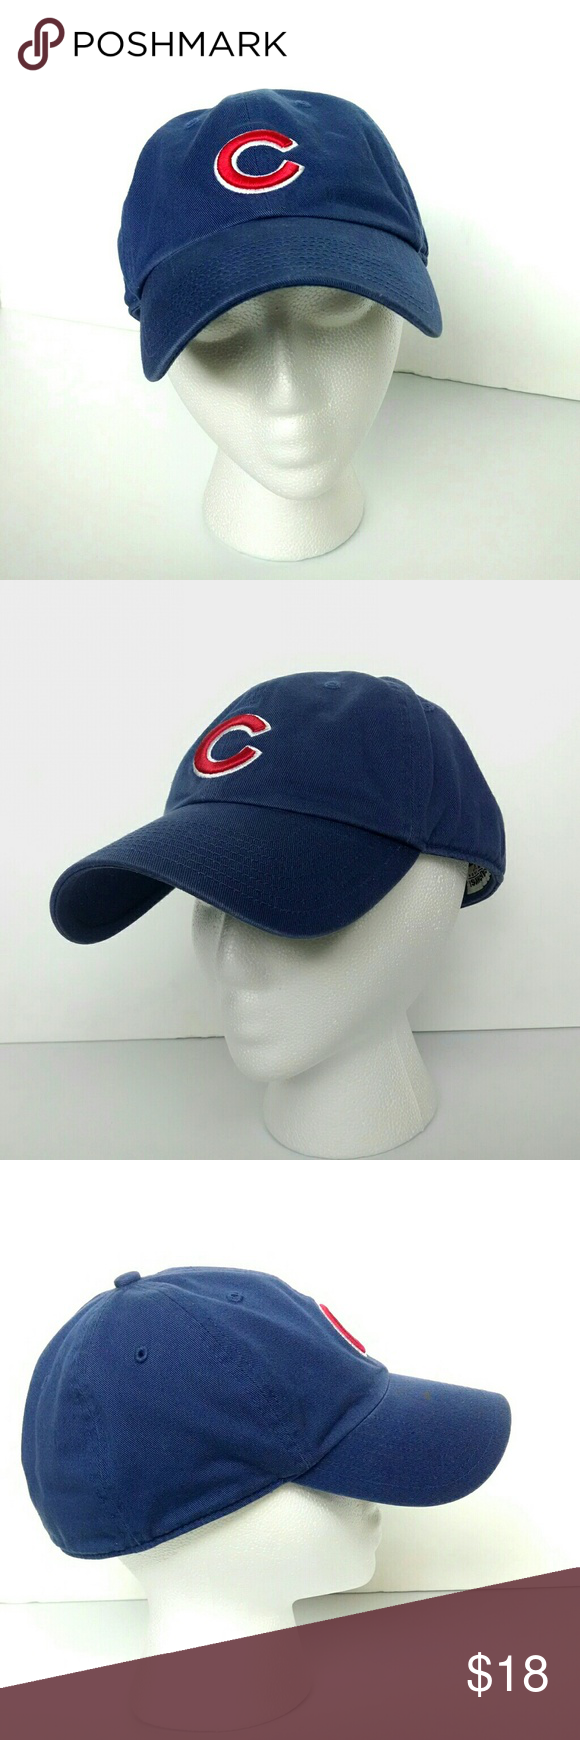 992df4c9bc7 Chicago Cubs Fitted Baseball Cap Excellent Used Condition MLB Genuine  Merchandise